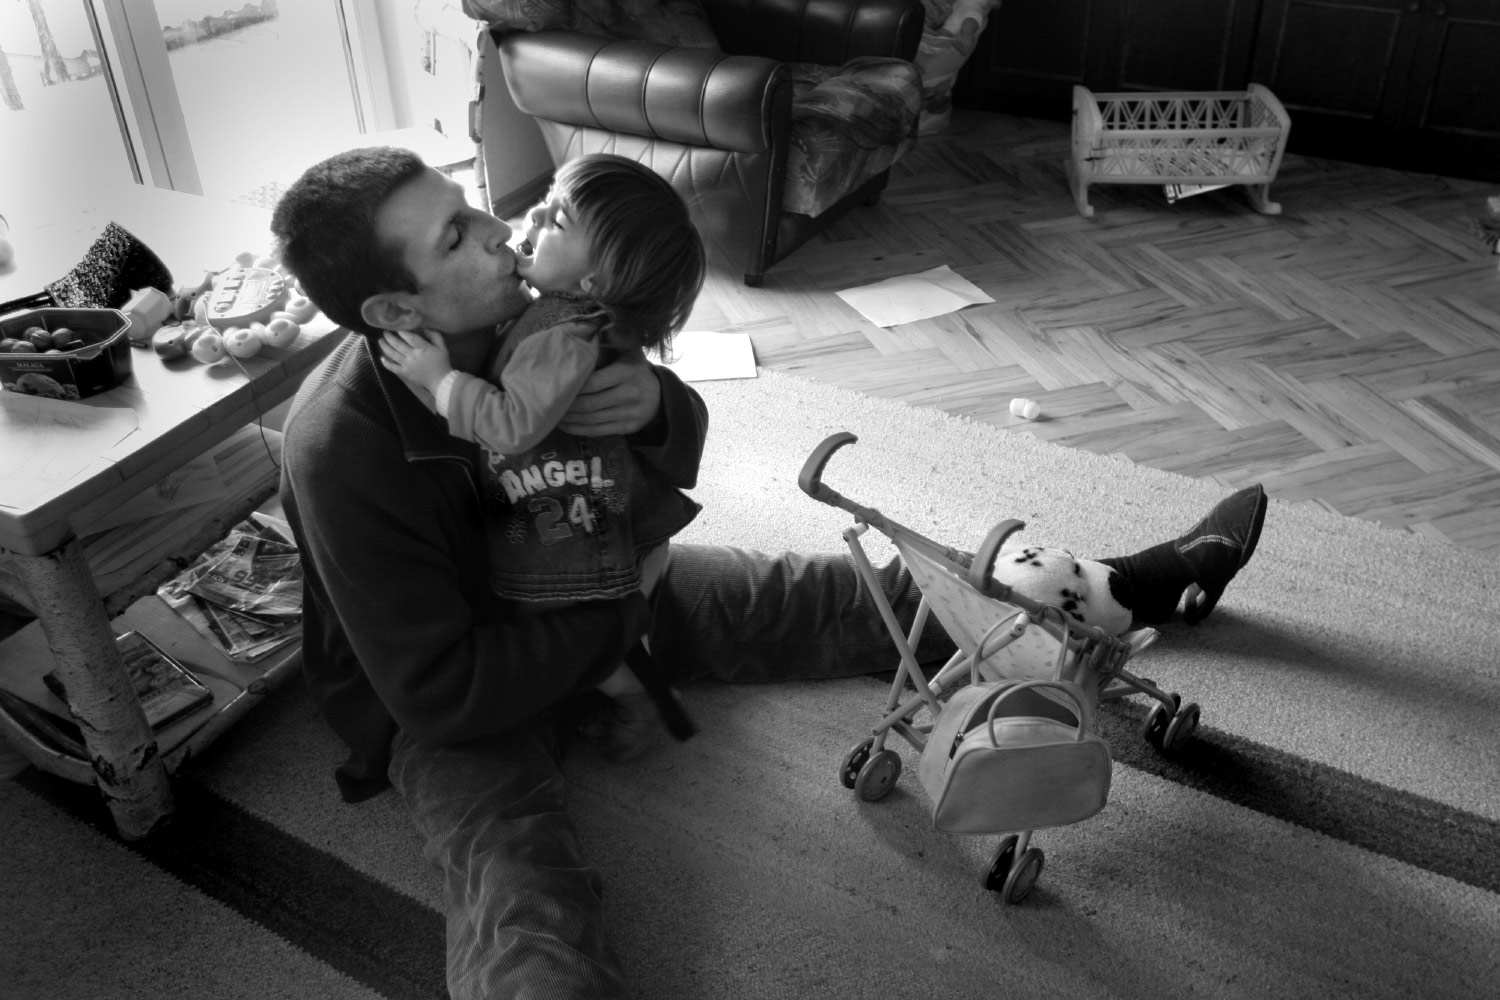 Dad at home - Documentary photographer Anna Bedyńska